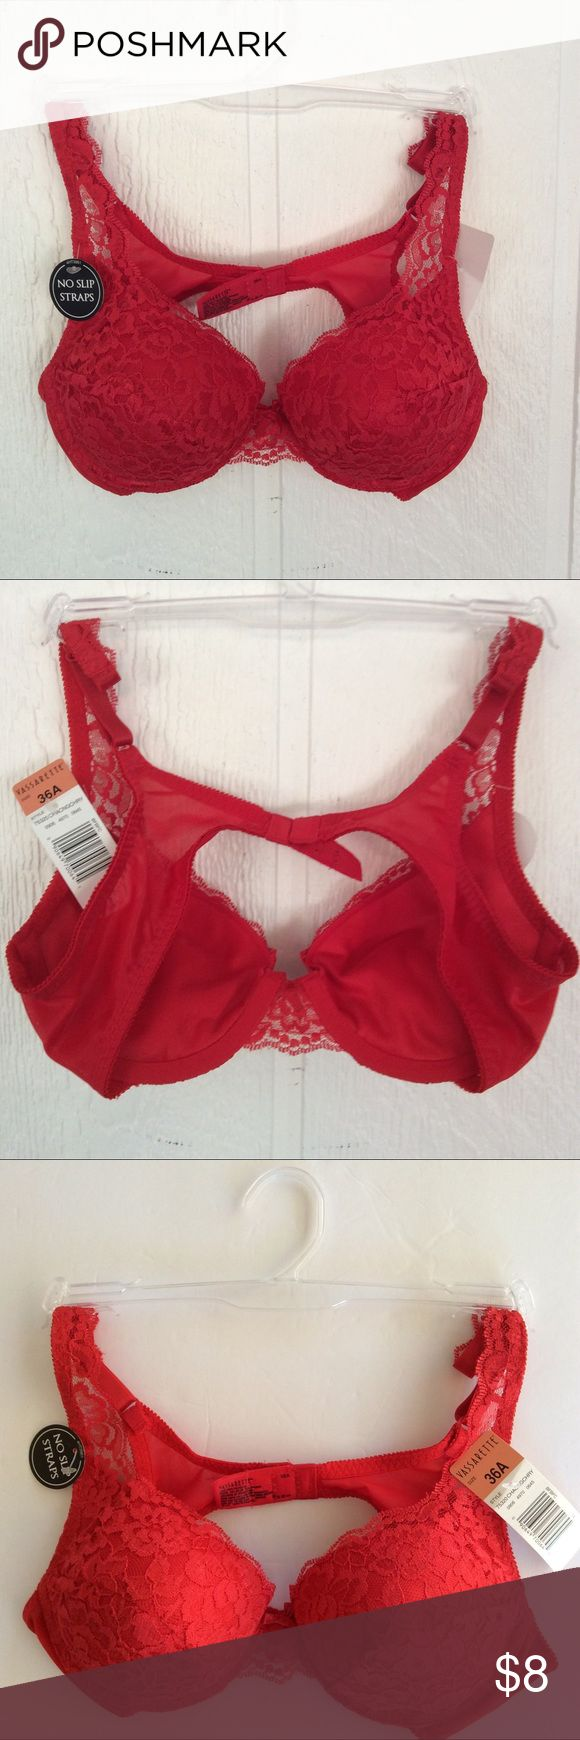 💋VASSARETTE NWT PADDED PUSH UP BRA💋💋 NWT padded sexy cherry red push up bra.  Never worn.  All over lace covering material on cups and on front straps.  3 closure positions.  No slip straps technology. Vassarette Intimates & Sleepwear Bras